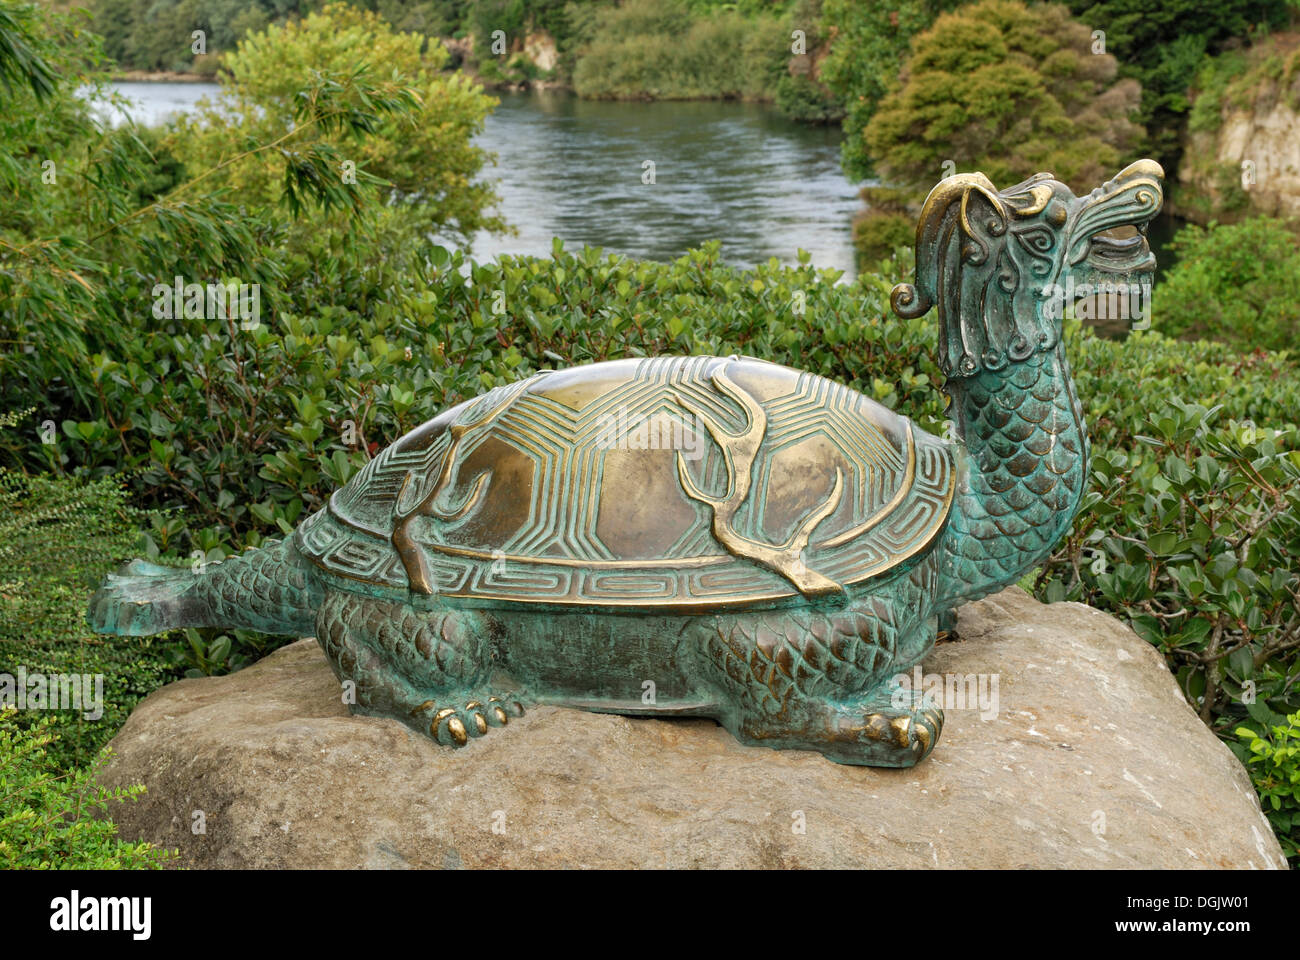 Bronze turtle, mythical creatures, Japanese Garden of Contemplation, Hamilton Gardens on the Waikato River, Hamilton - Stock Image